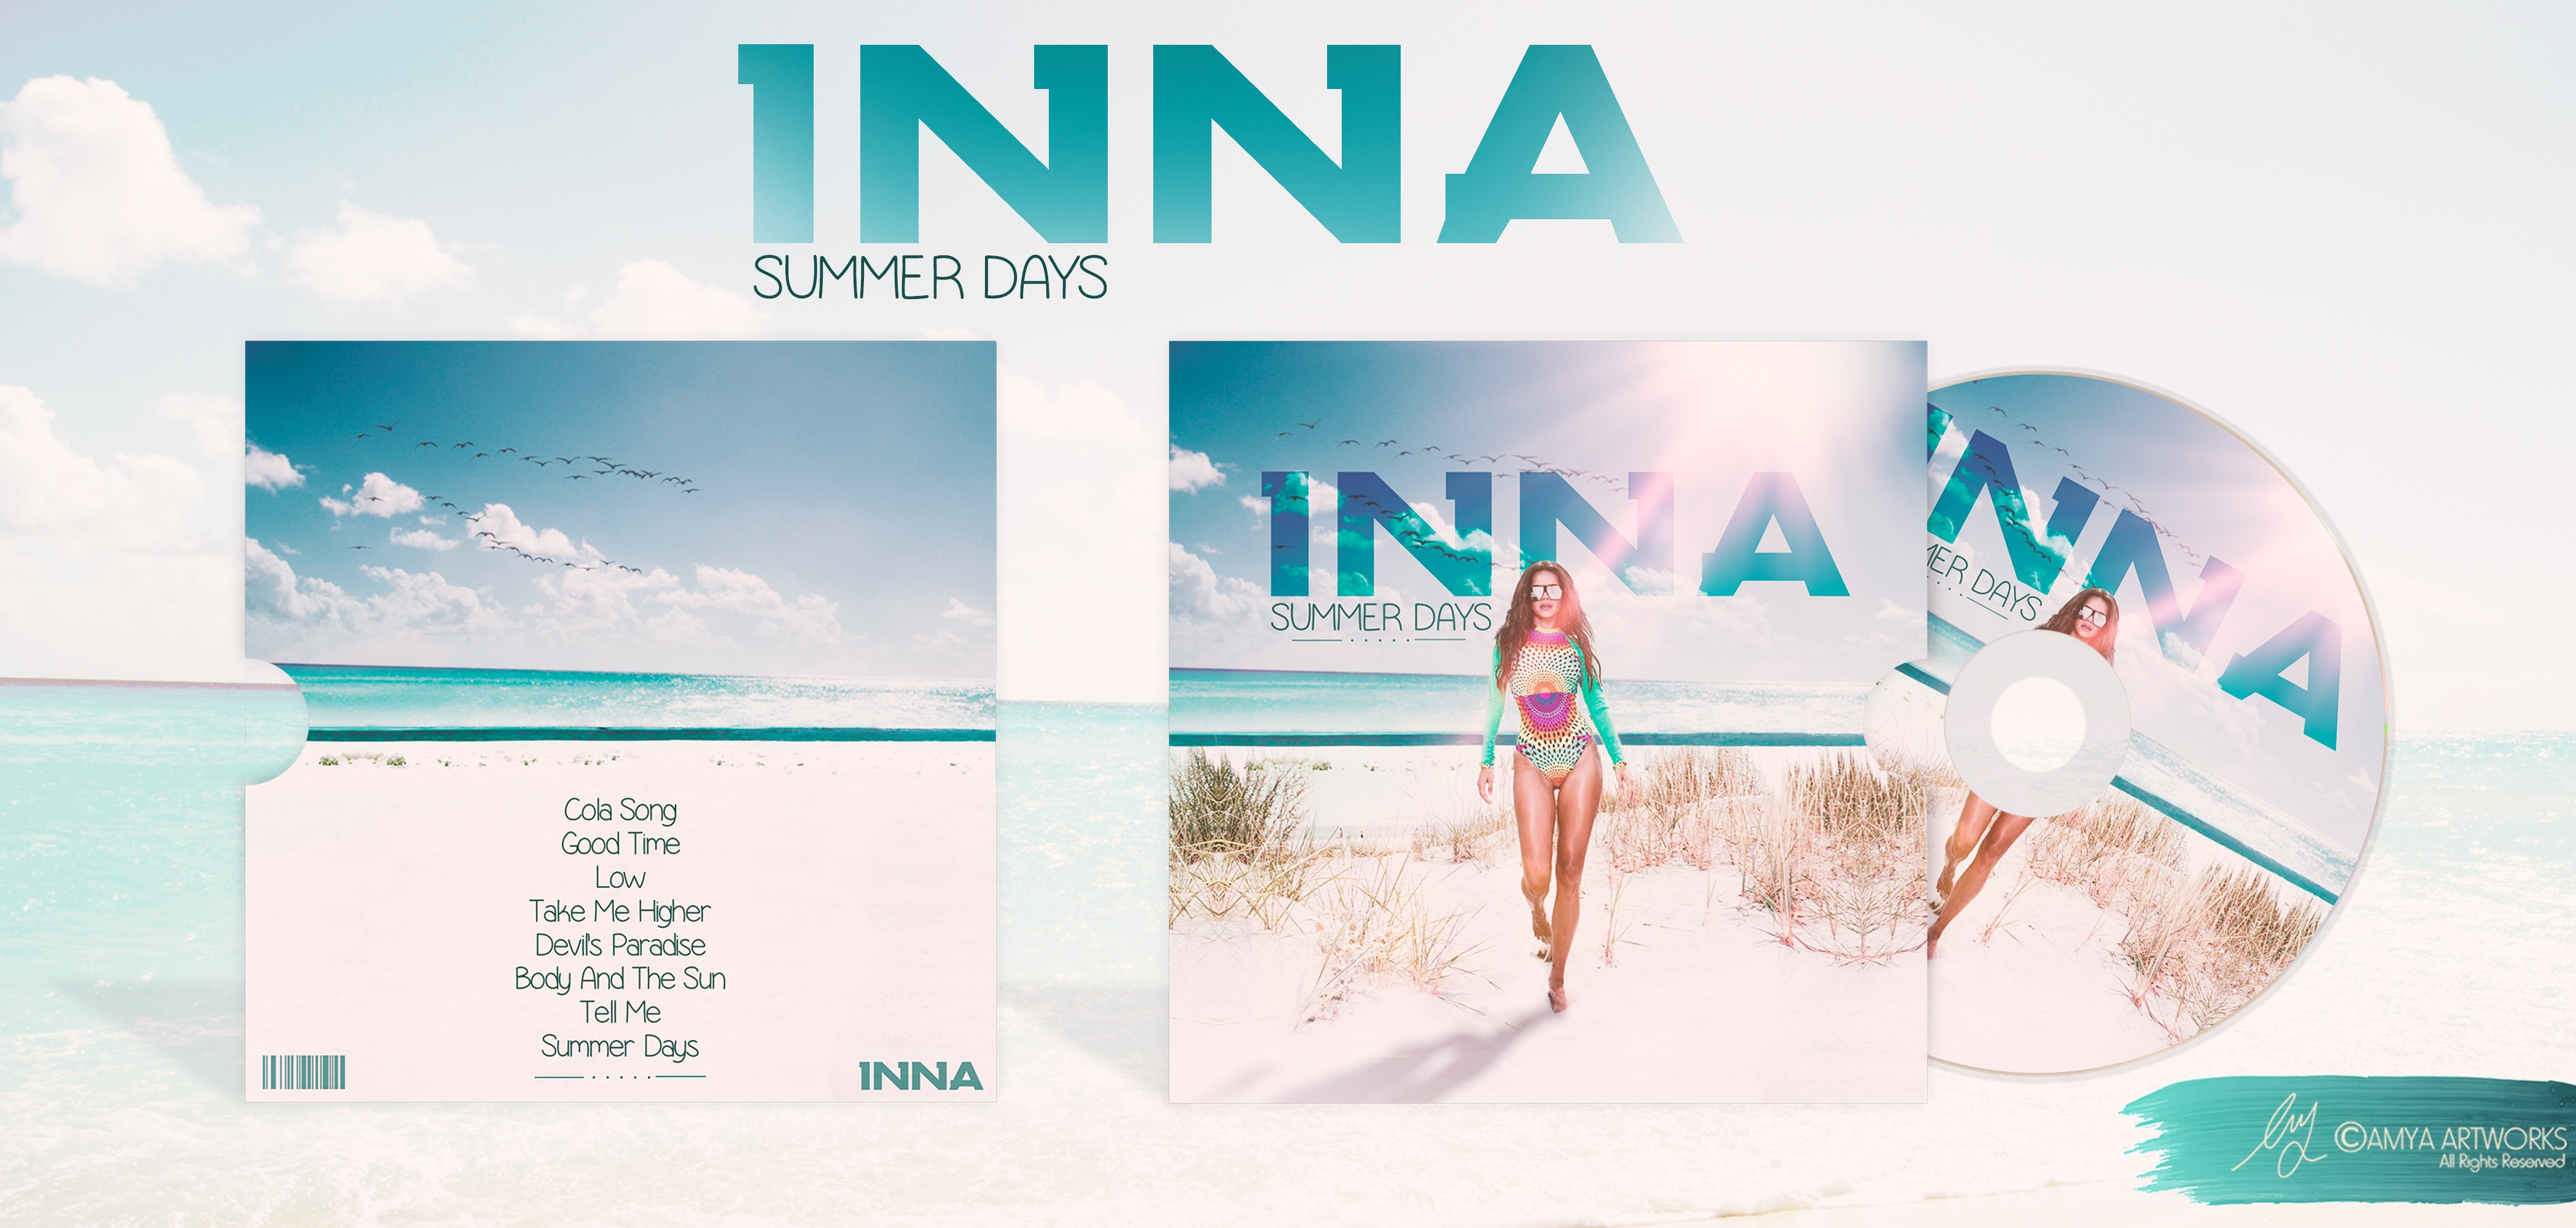 INNA-SUMMER DAYS box cover